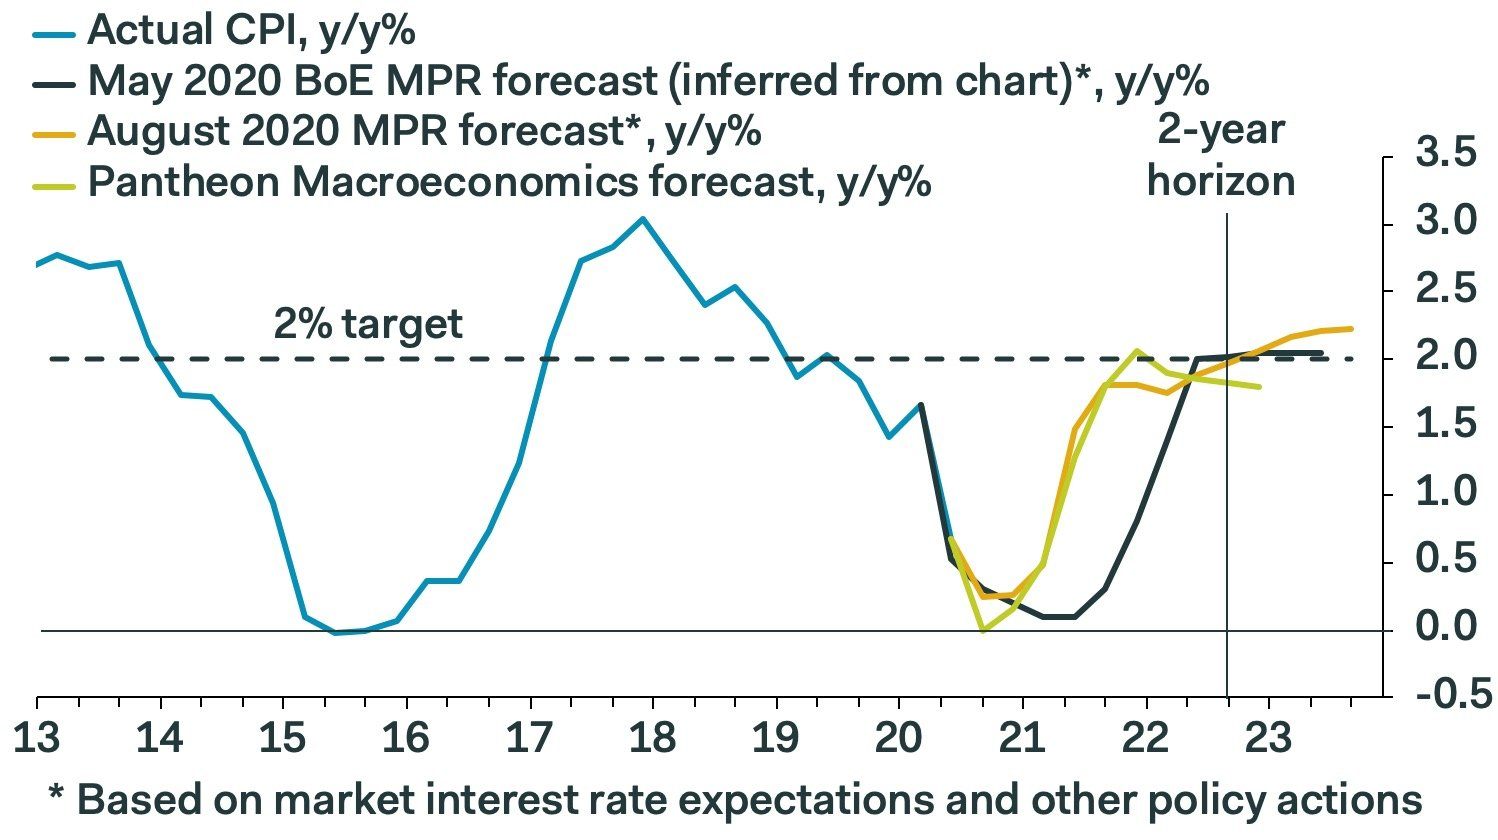 Bank of England expectations